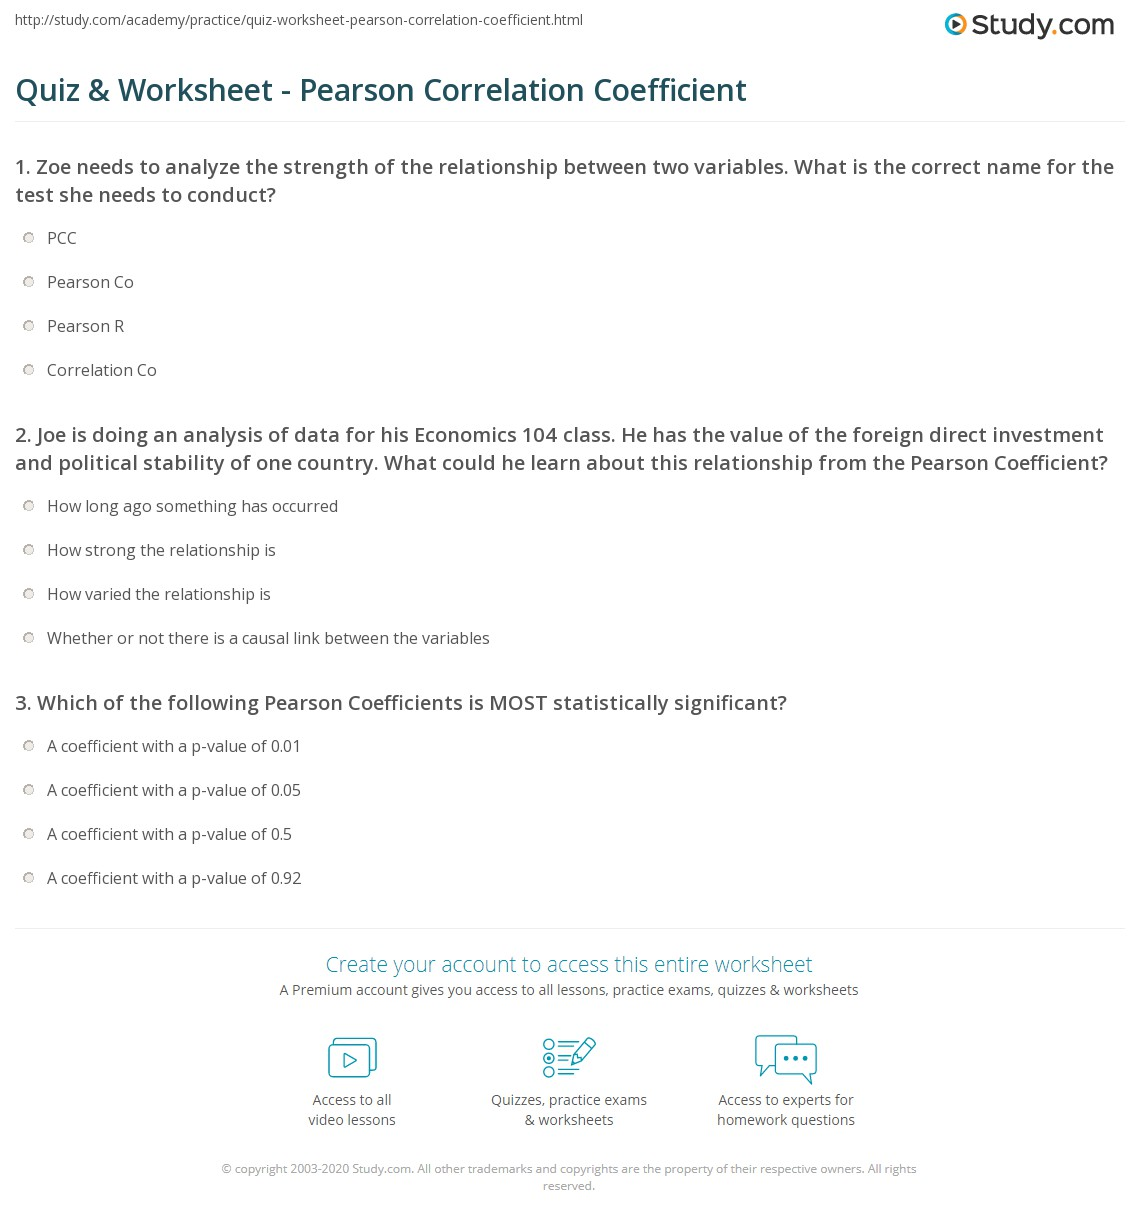 Quiz & Worksheet - Pearson Correlation Coefficient | Study.com